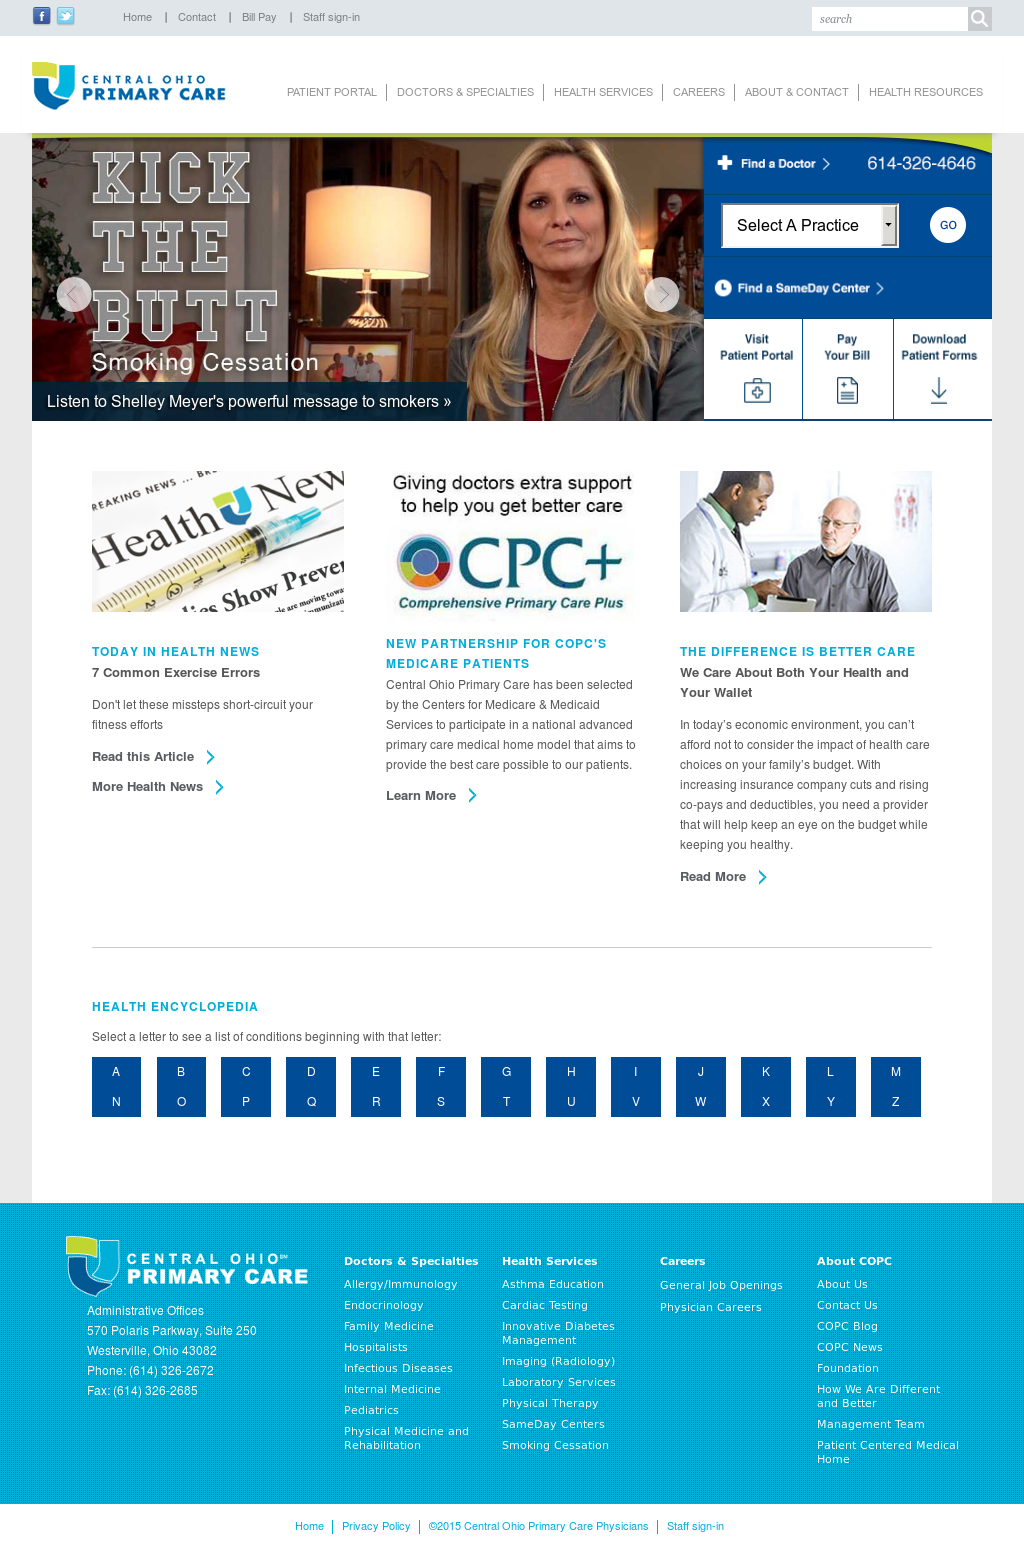 Central Ohio Primary Care Competitors, Revenue and Employees